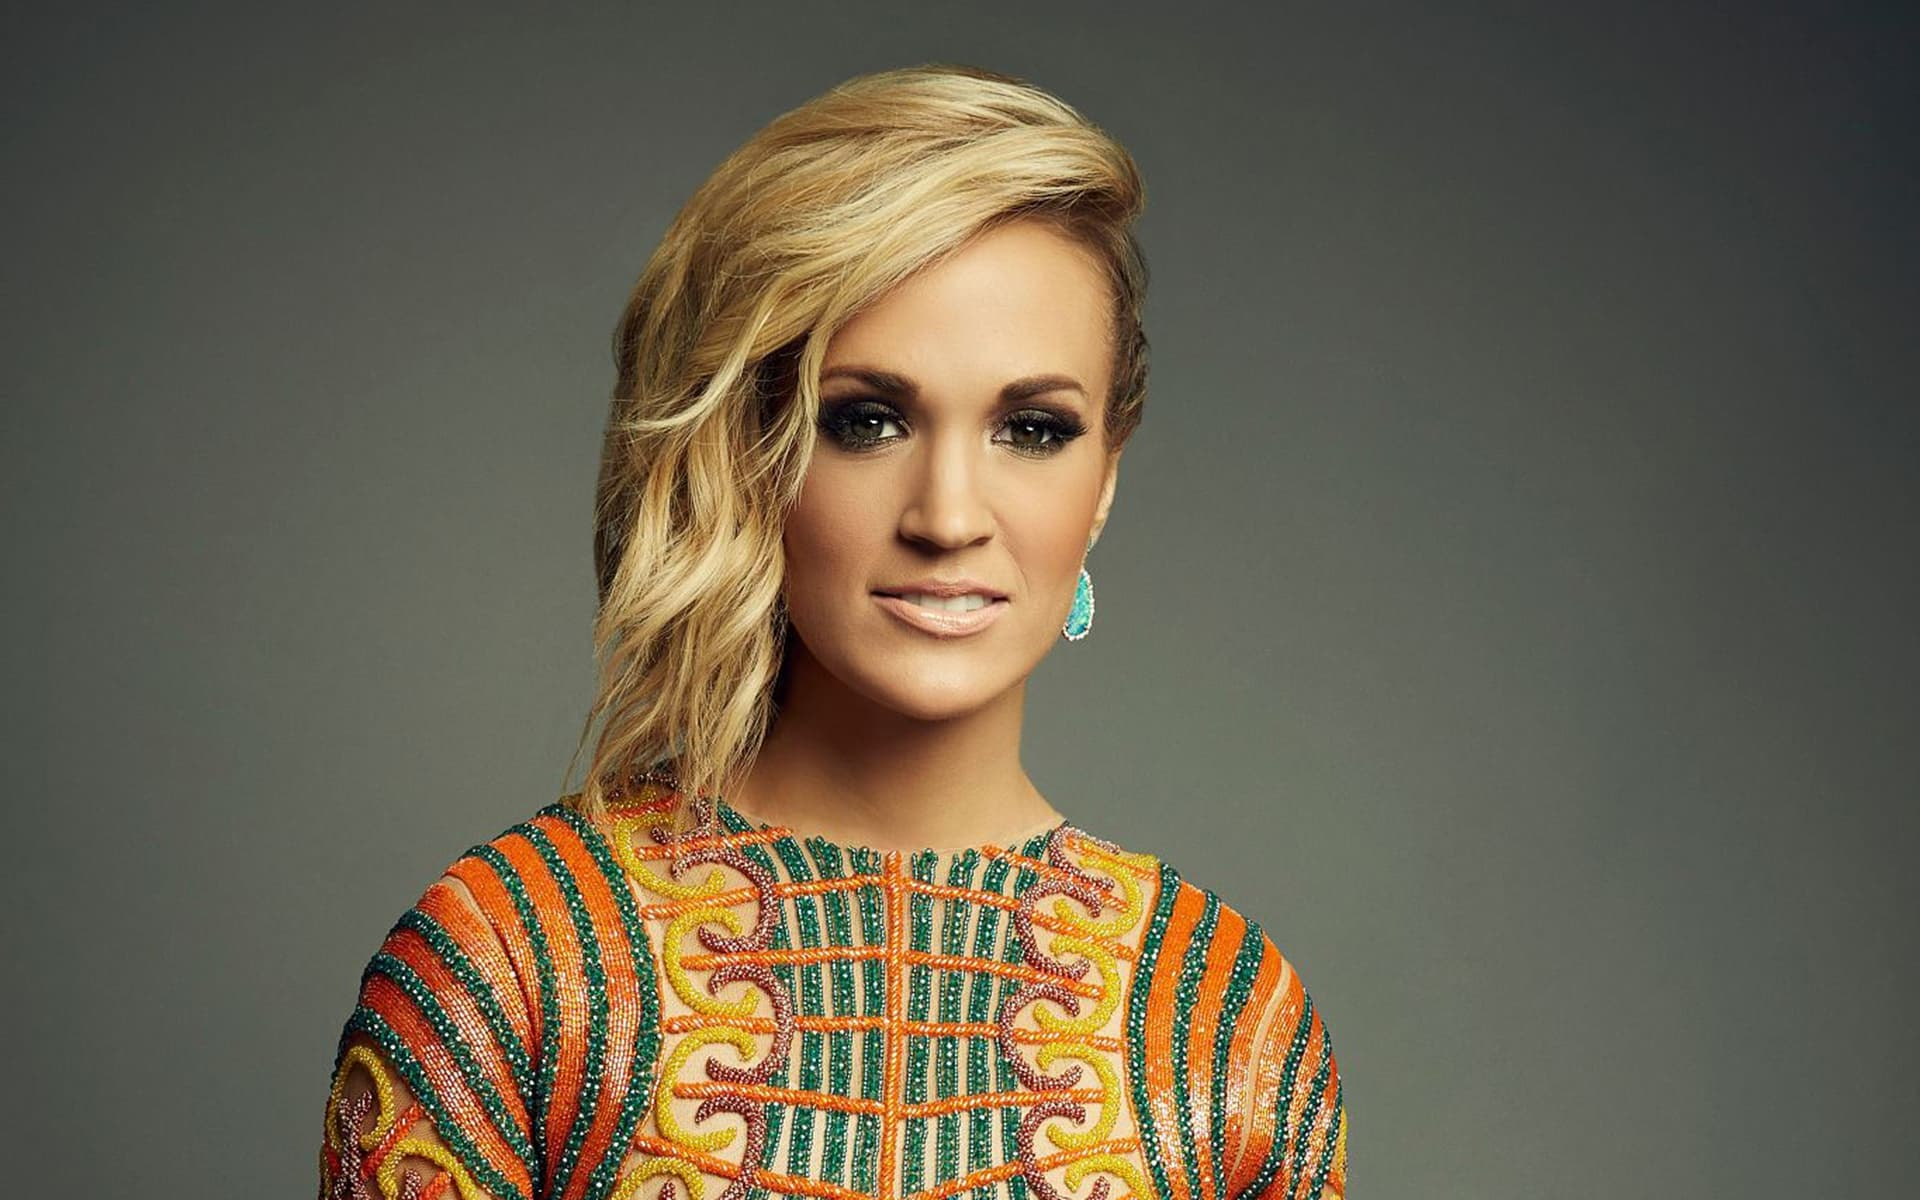 Carrie Underwood The Champion (Official Music Video ...